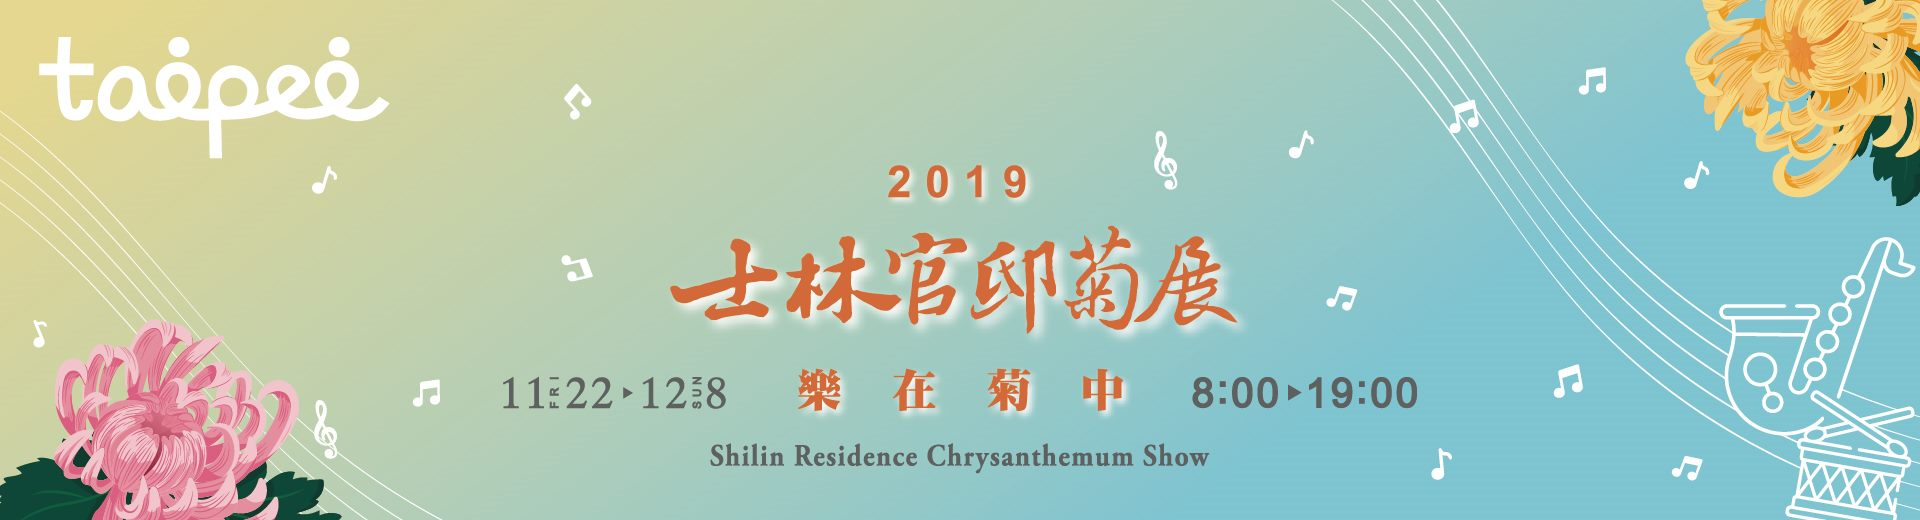 11.22-12.8 Shilin's official residence in Chrysanthemum